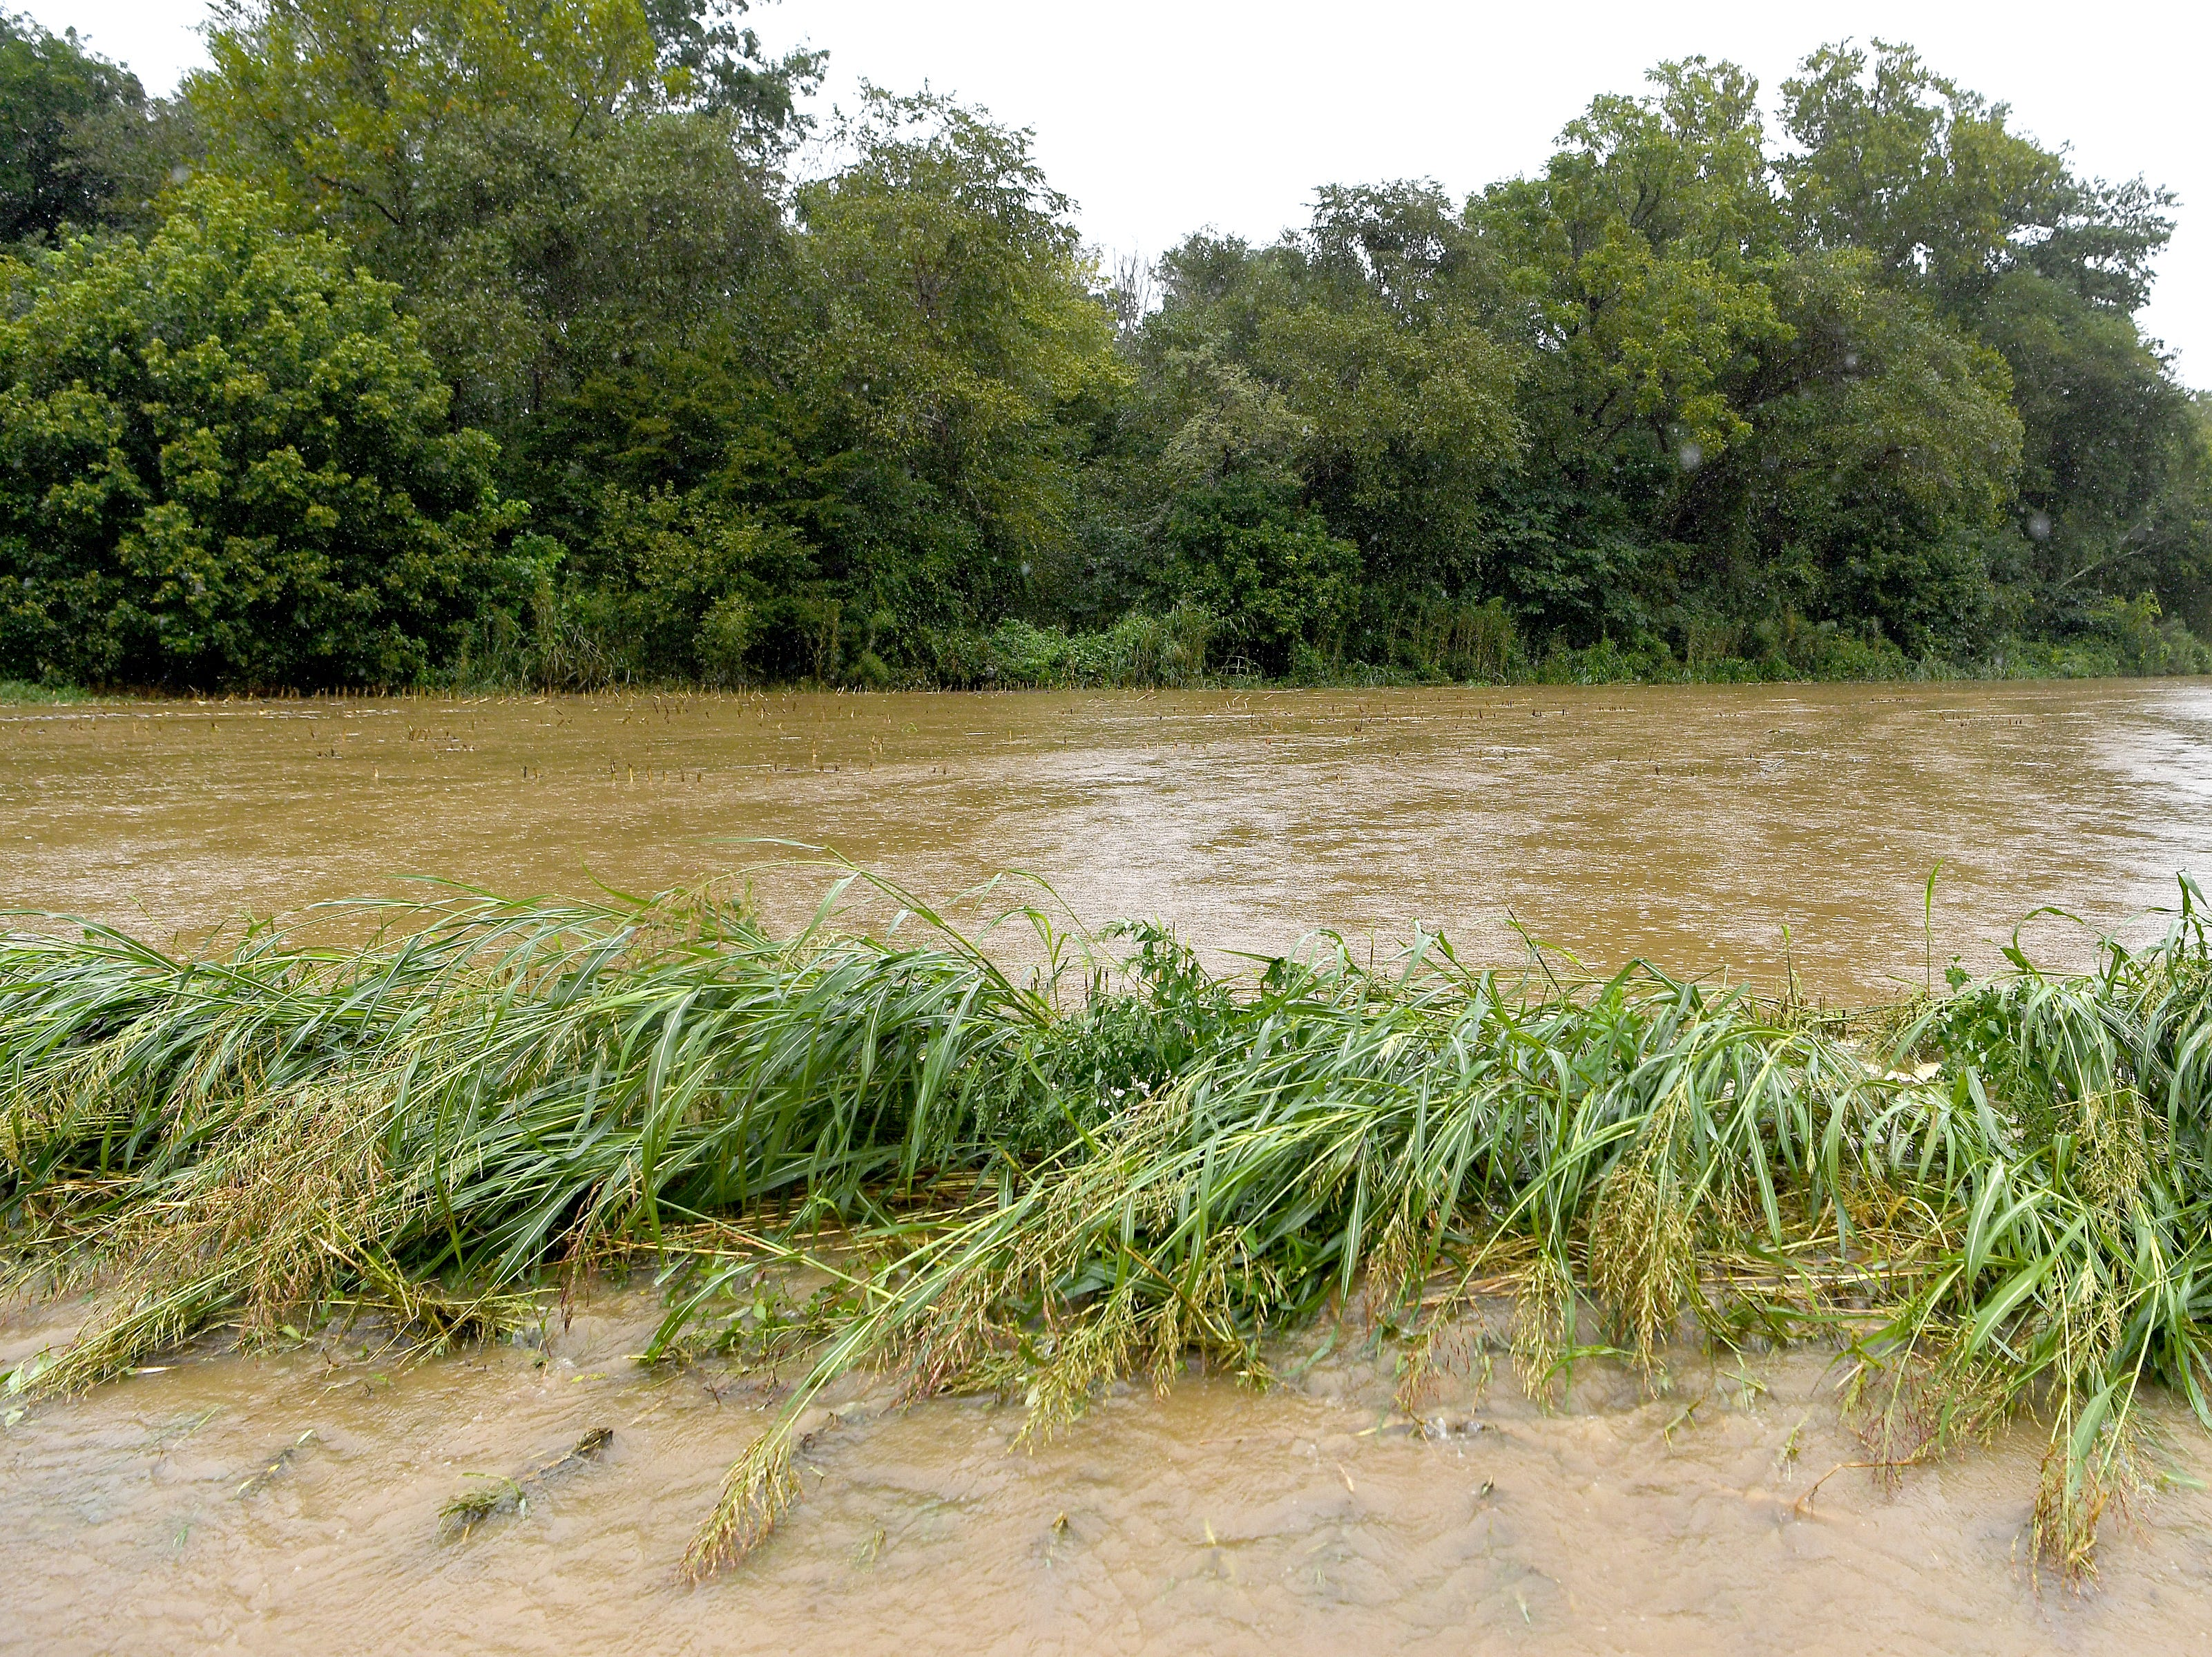 Cane Creek jumps its banks and covers Lower Brush Creek Road in Fletcher with water on Sept. 16, 2018. Hurricane Florence, now downgraded to a tropical depression brought sustained rain to the area.